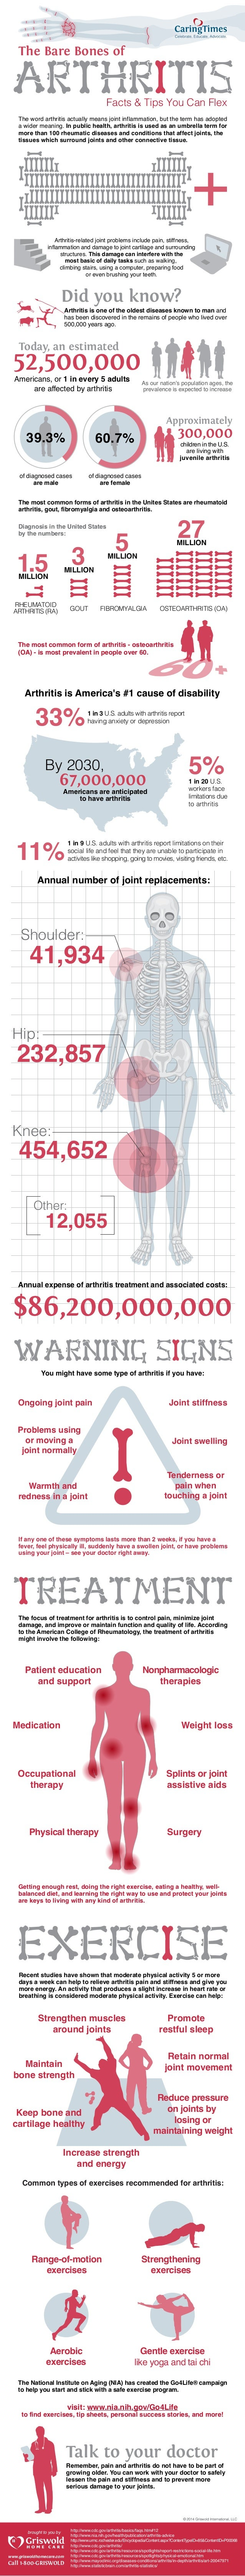 Arthritis is America's #1 cause of disability The Bare Bones of Facts & Tips You Can Flex The most common form of arthriti...